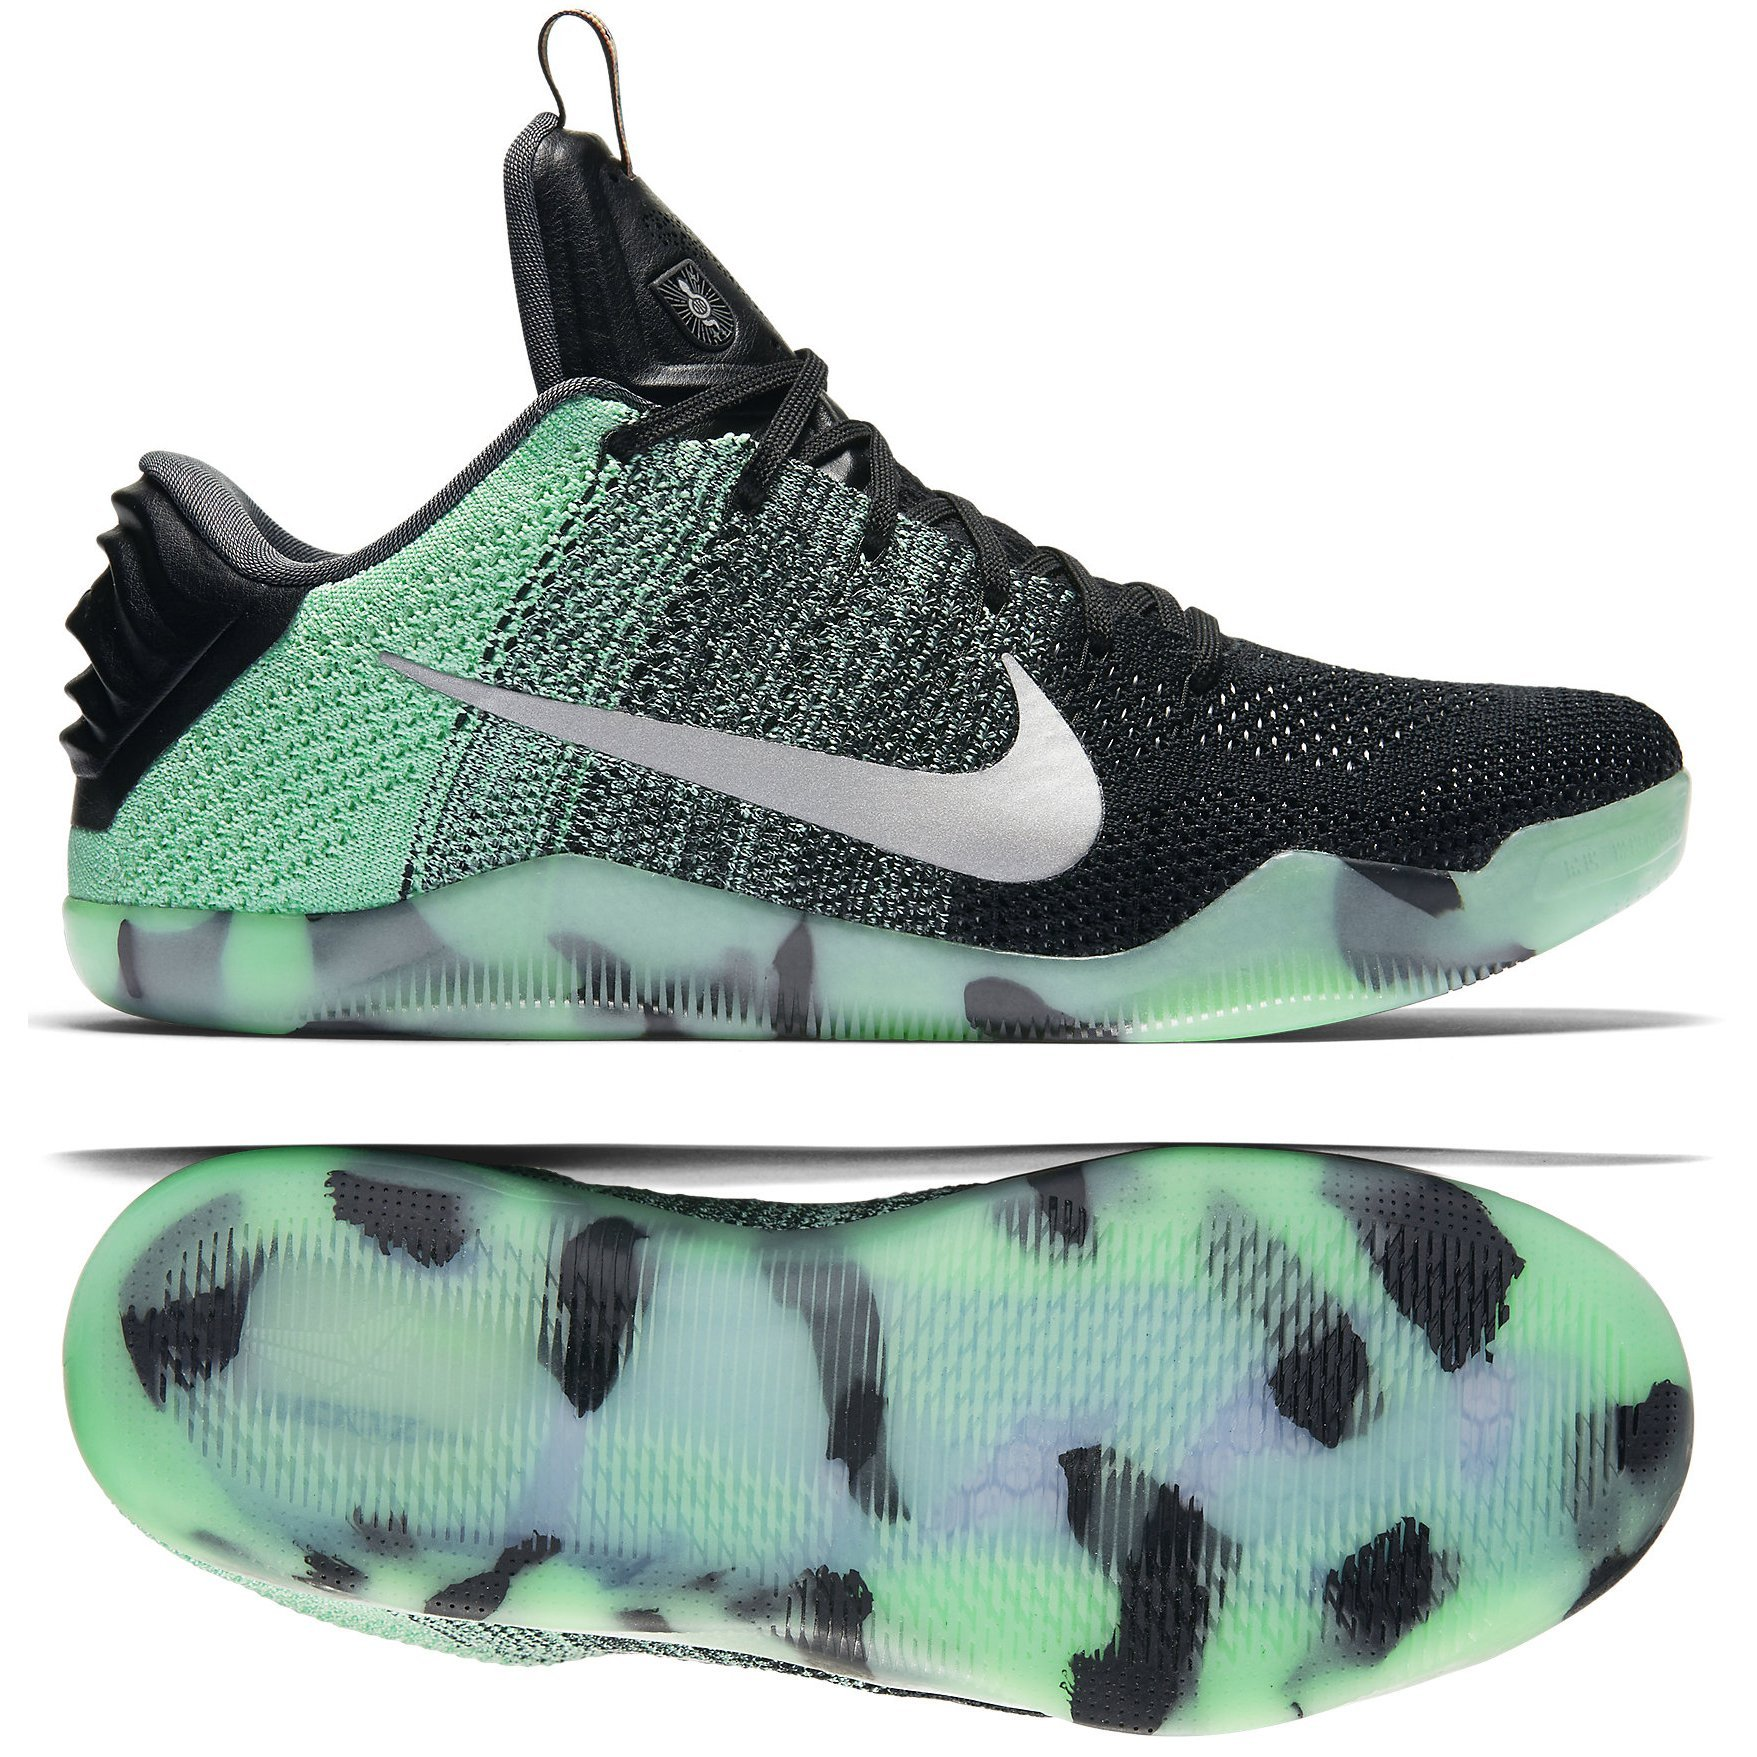 super popular 419f9 0f1d6 Galleon - NIKE Kobe XI Elite Low All Star 11 Men Basketball Shoes New Green  Glow Black